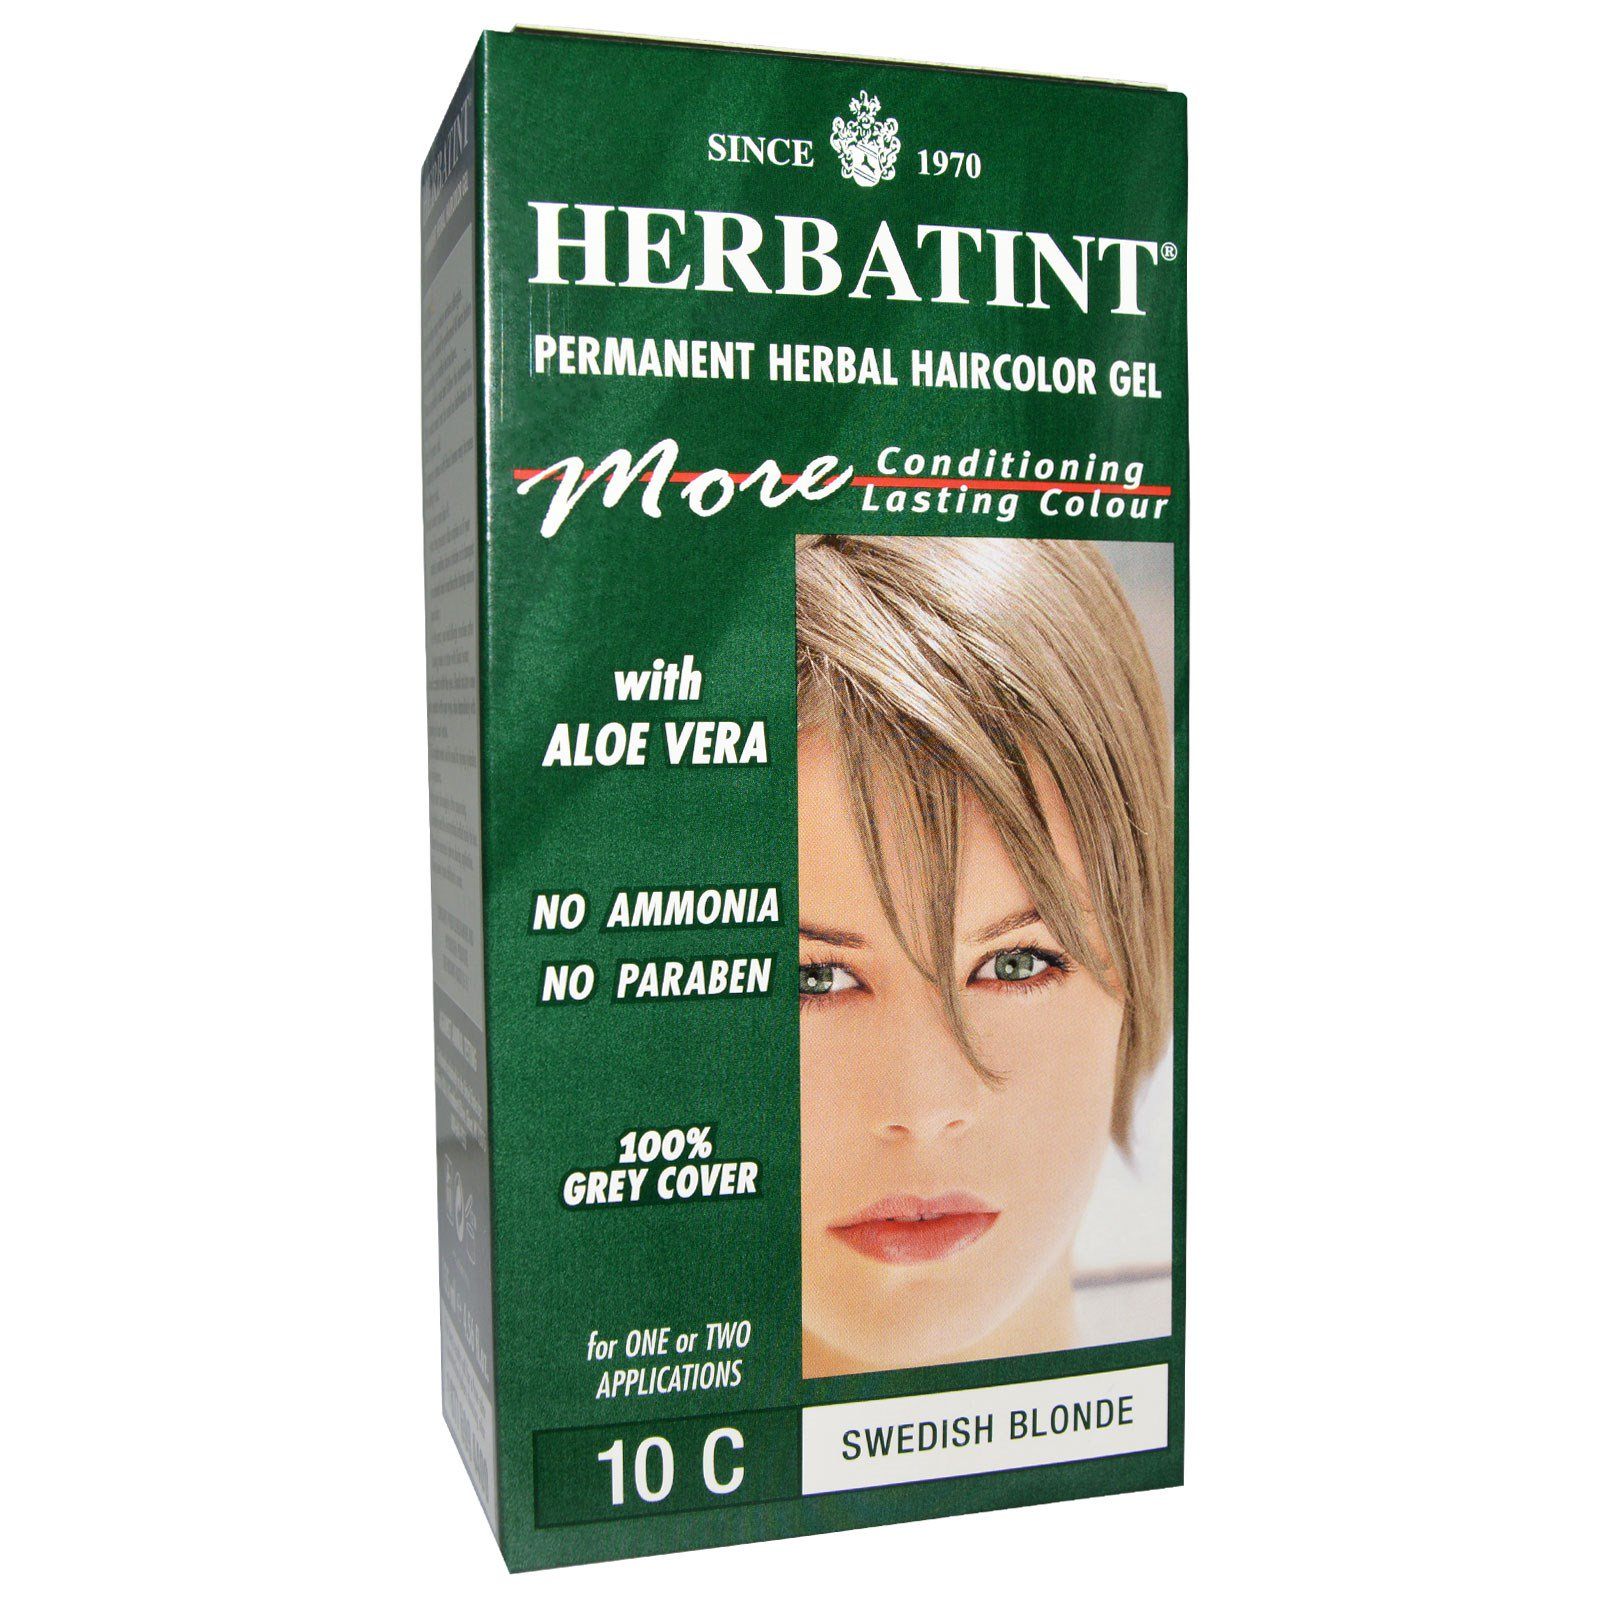 Herbatint Permanent Herbal Haircolor Gel 10c Swedish Blonde 456